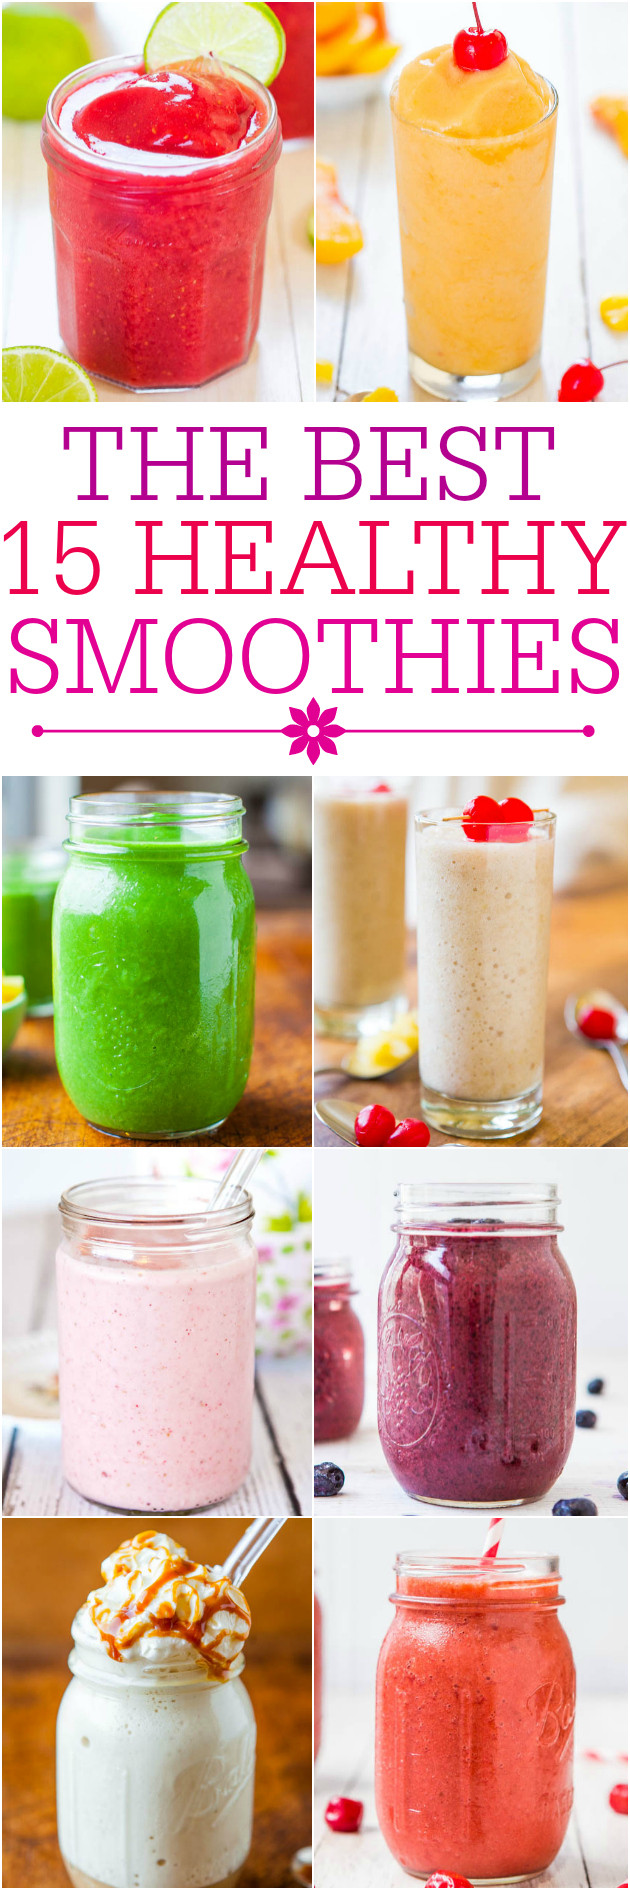 Smoothies Recipes Healthy  healthy fruit smoothie recipes